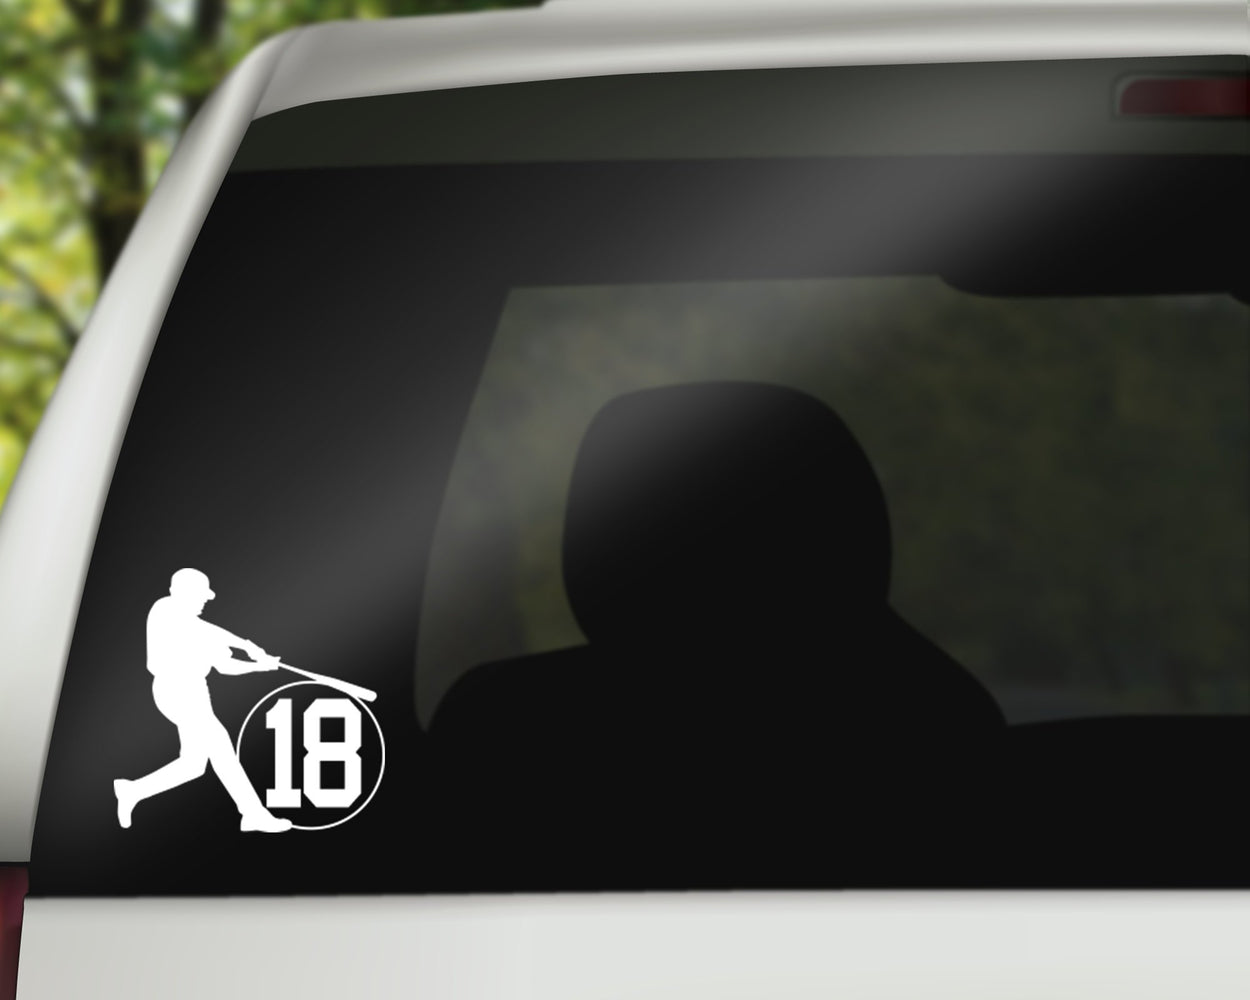 Baseball Jersey Number Decal, Car Decals, Personally Yours Accessories